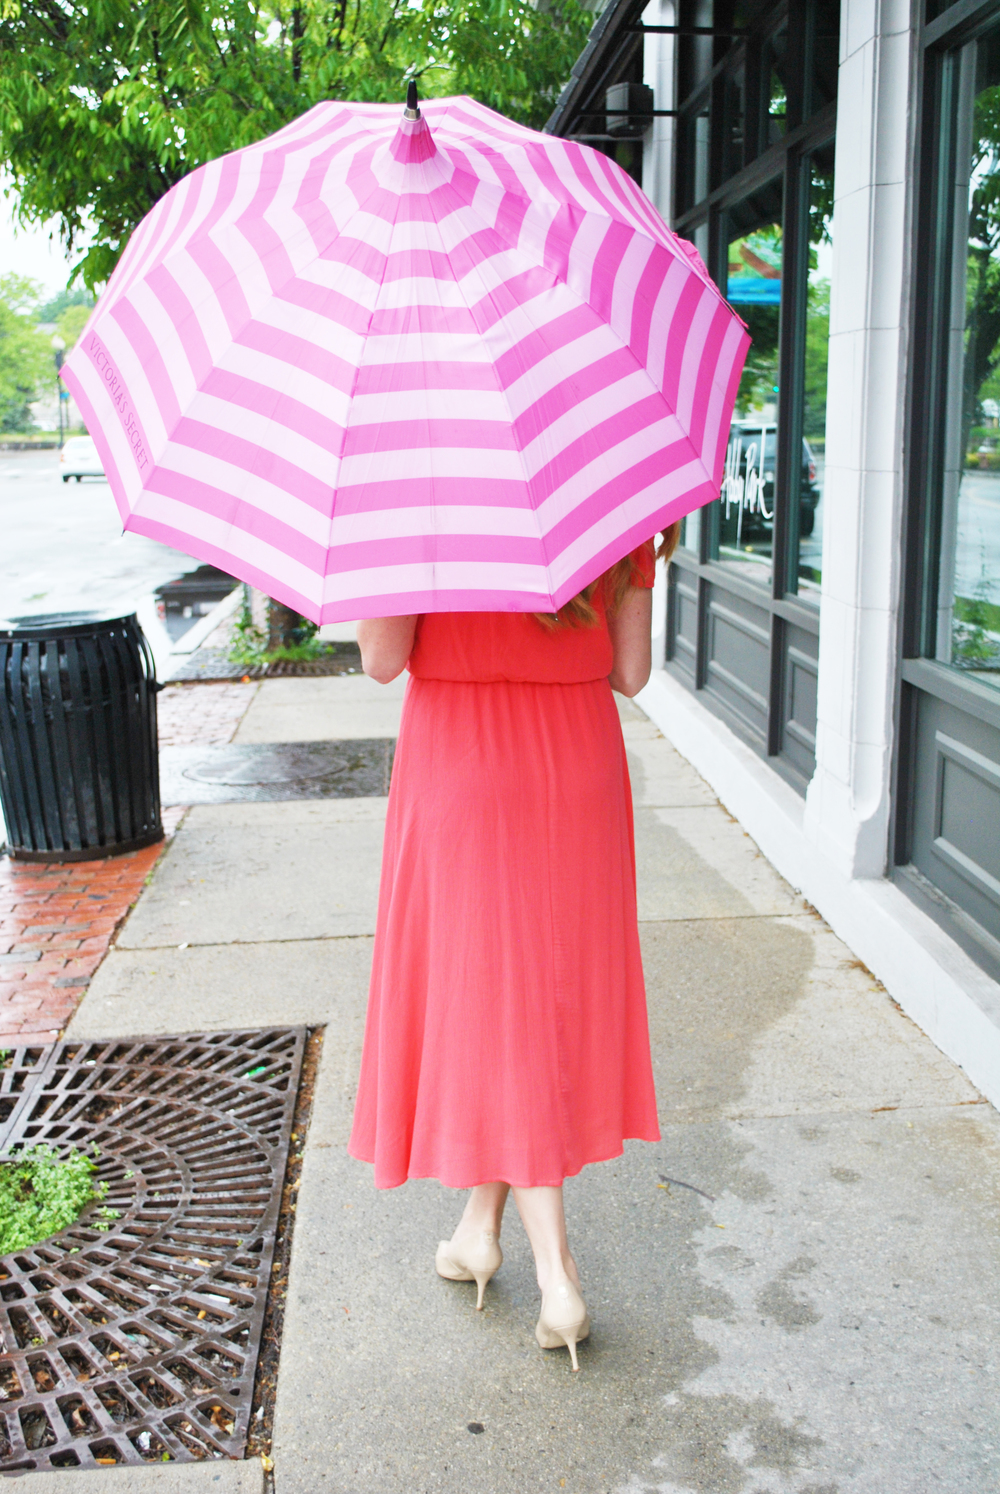 thoughtfulwish | pink dress // nordstrom // fashion blogger // fashion blog // boston blog // boston // new england fashion // summer fashion // preppy // meredith wish